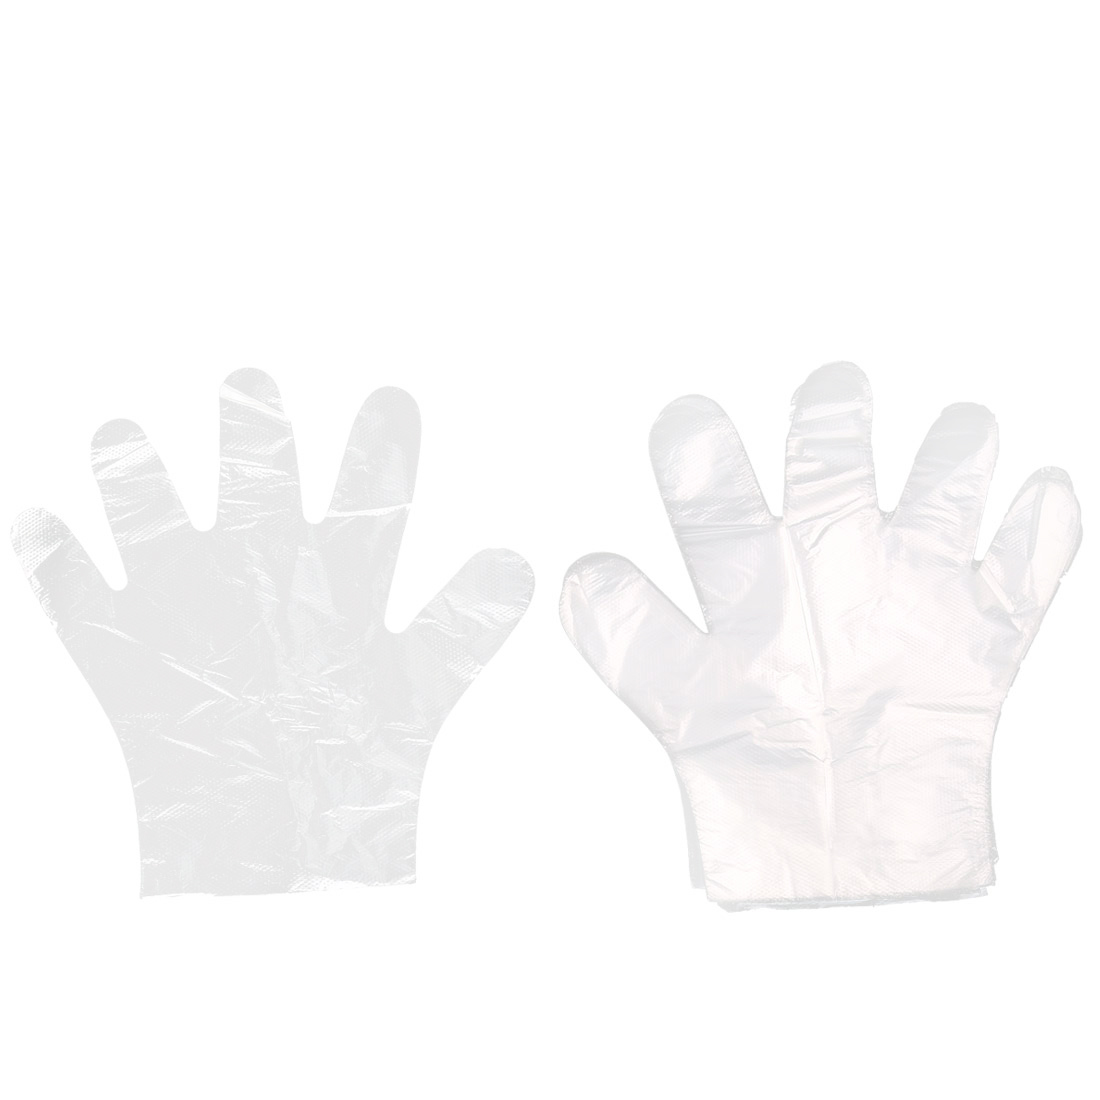 Home Kitchen Restaurant BBQ Clear Plastic Protective Disposable Gloves 50 Pairs